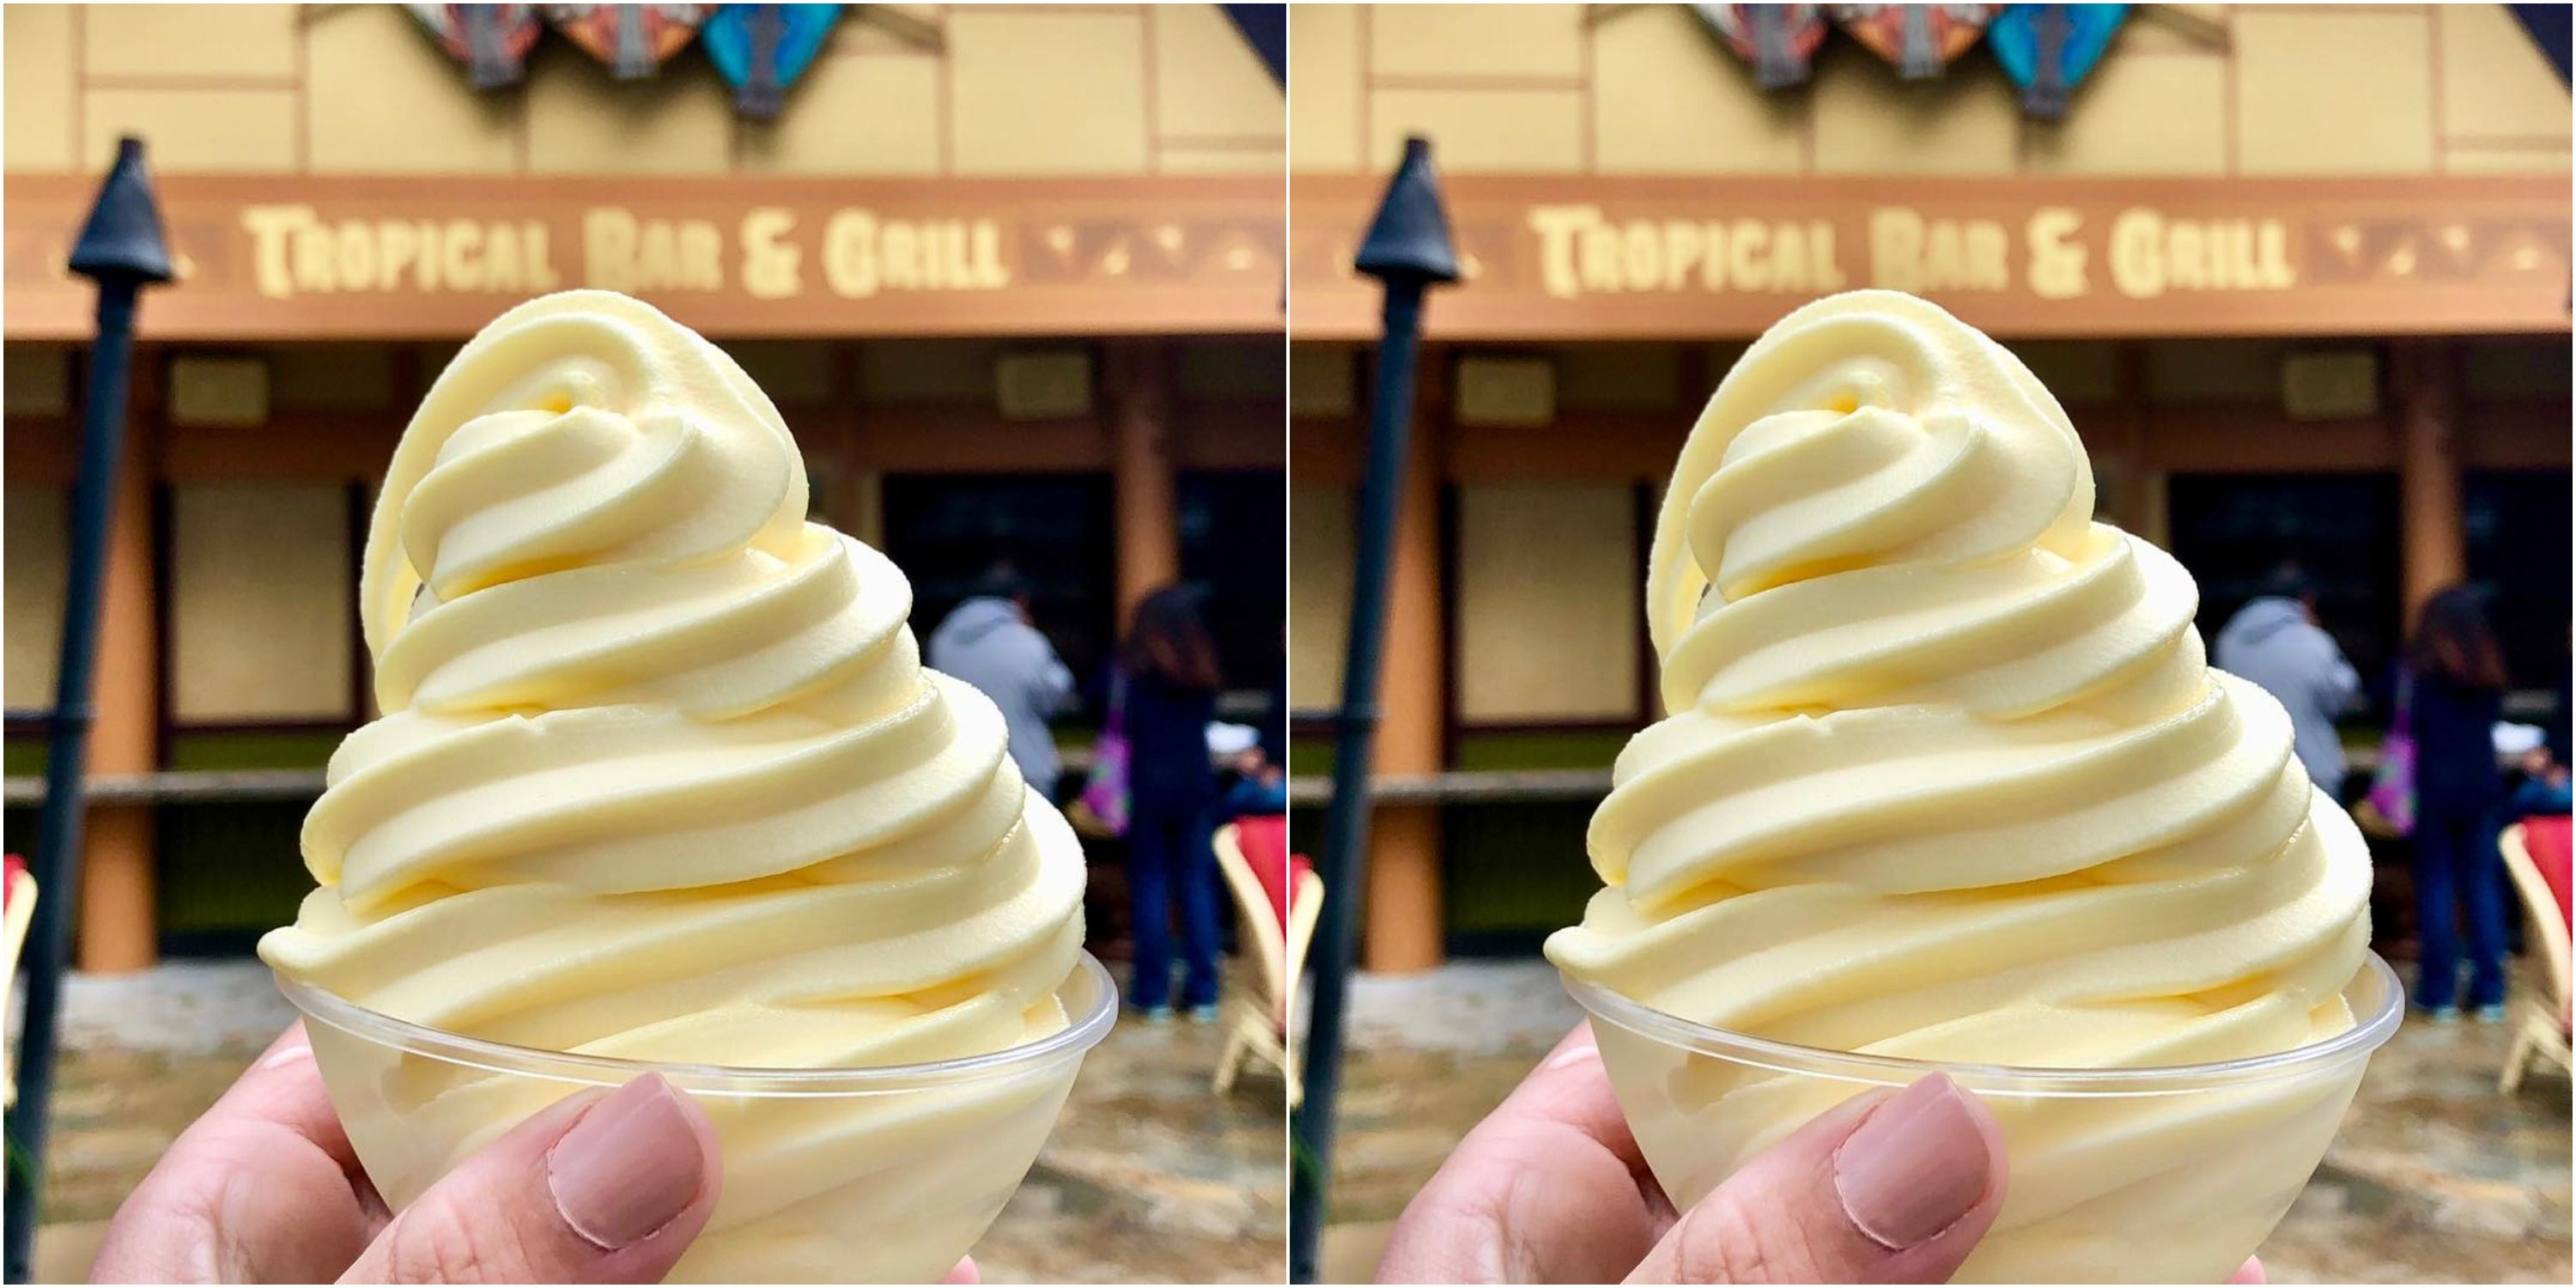 Disney Shared Its Iconic Dole Whip Recipe